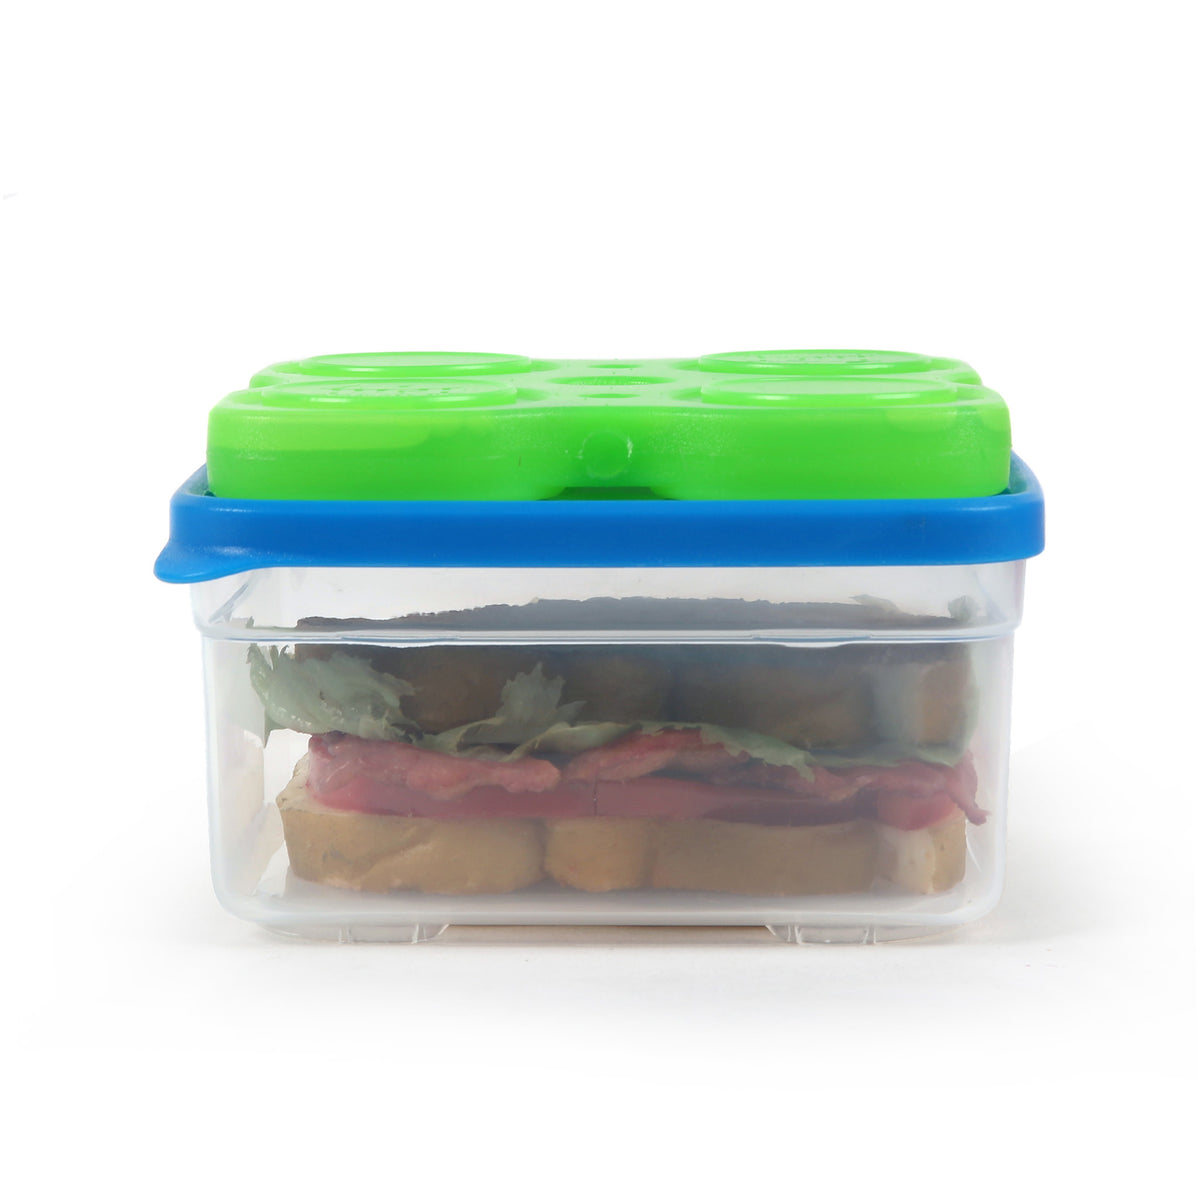 Interlockers 3 Piece Sandwich Set - Propped